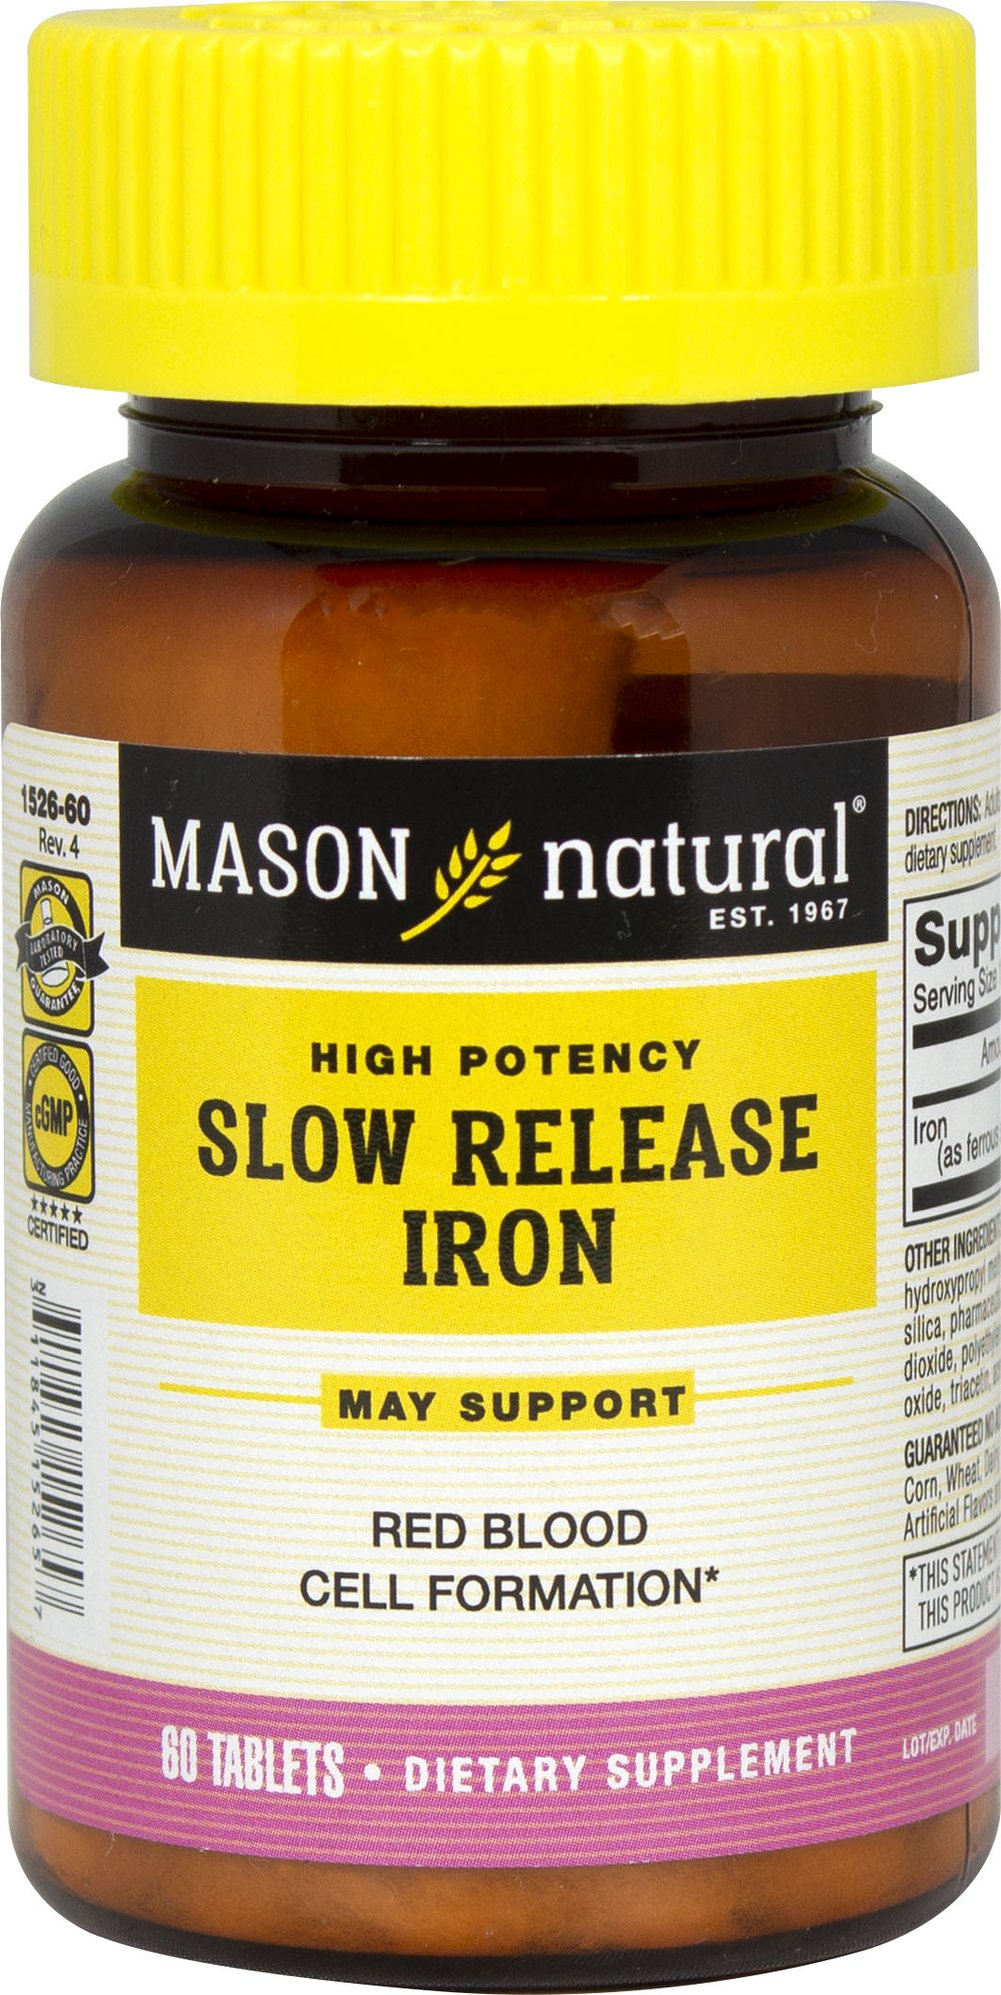 Iron 50 mg Slow Release <p><b>From the Manufacturer's Label:</b></p> <p>Slow Release Iron 50 mg is manufactured by Mason Naturals.</p> 60 Tablets 50 mg $4.99